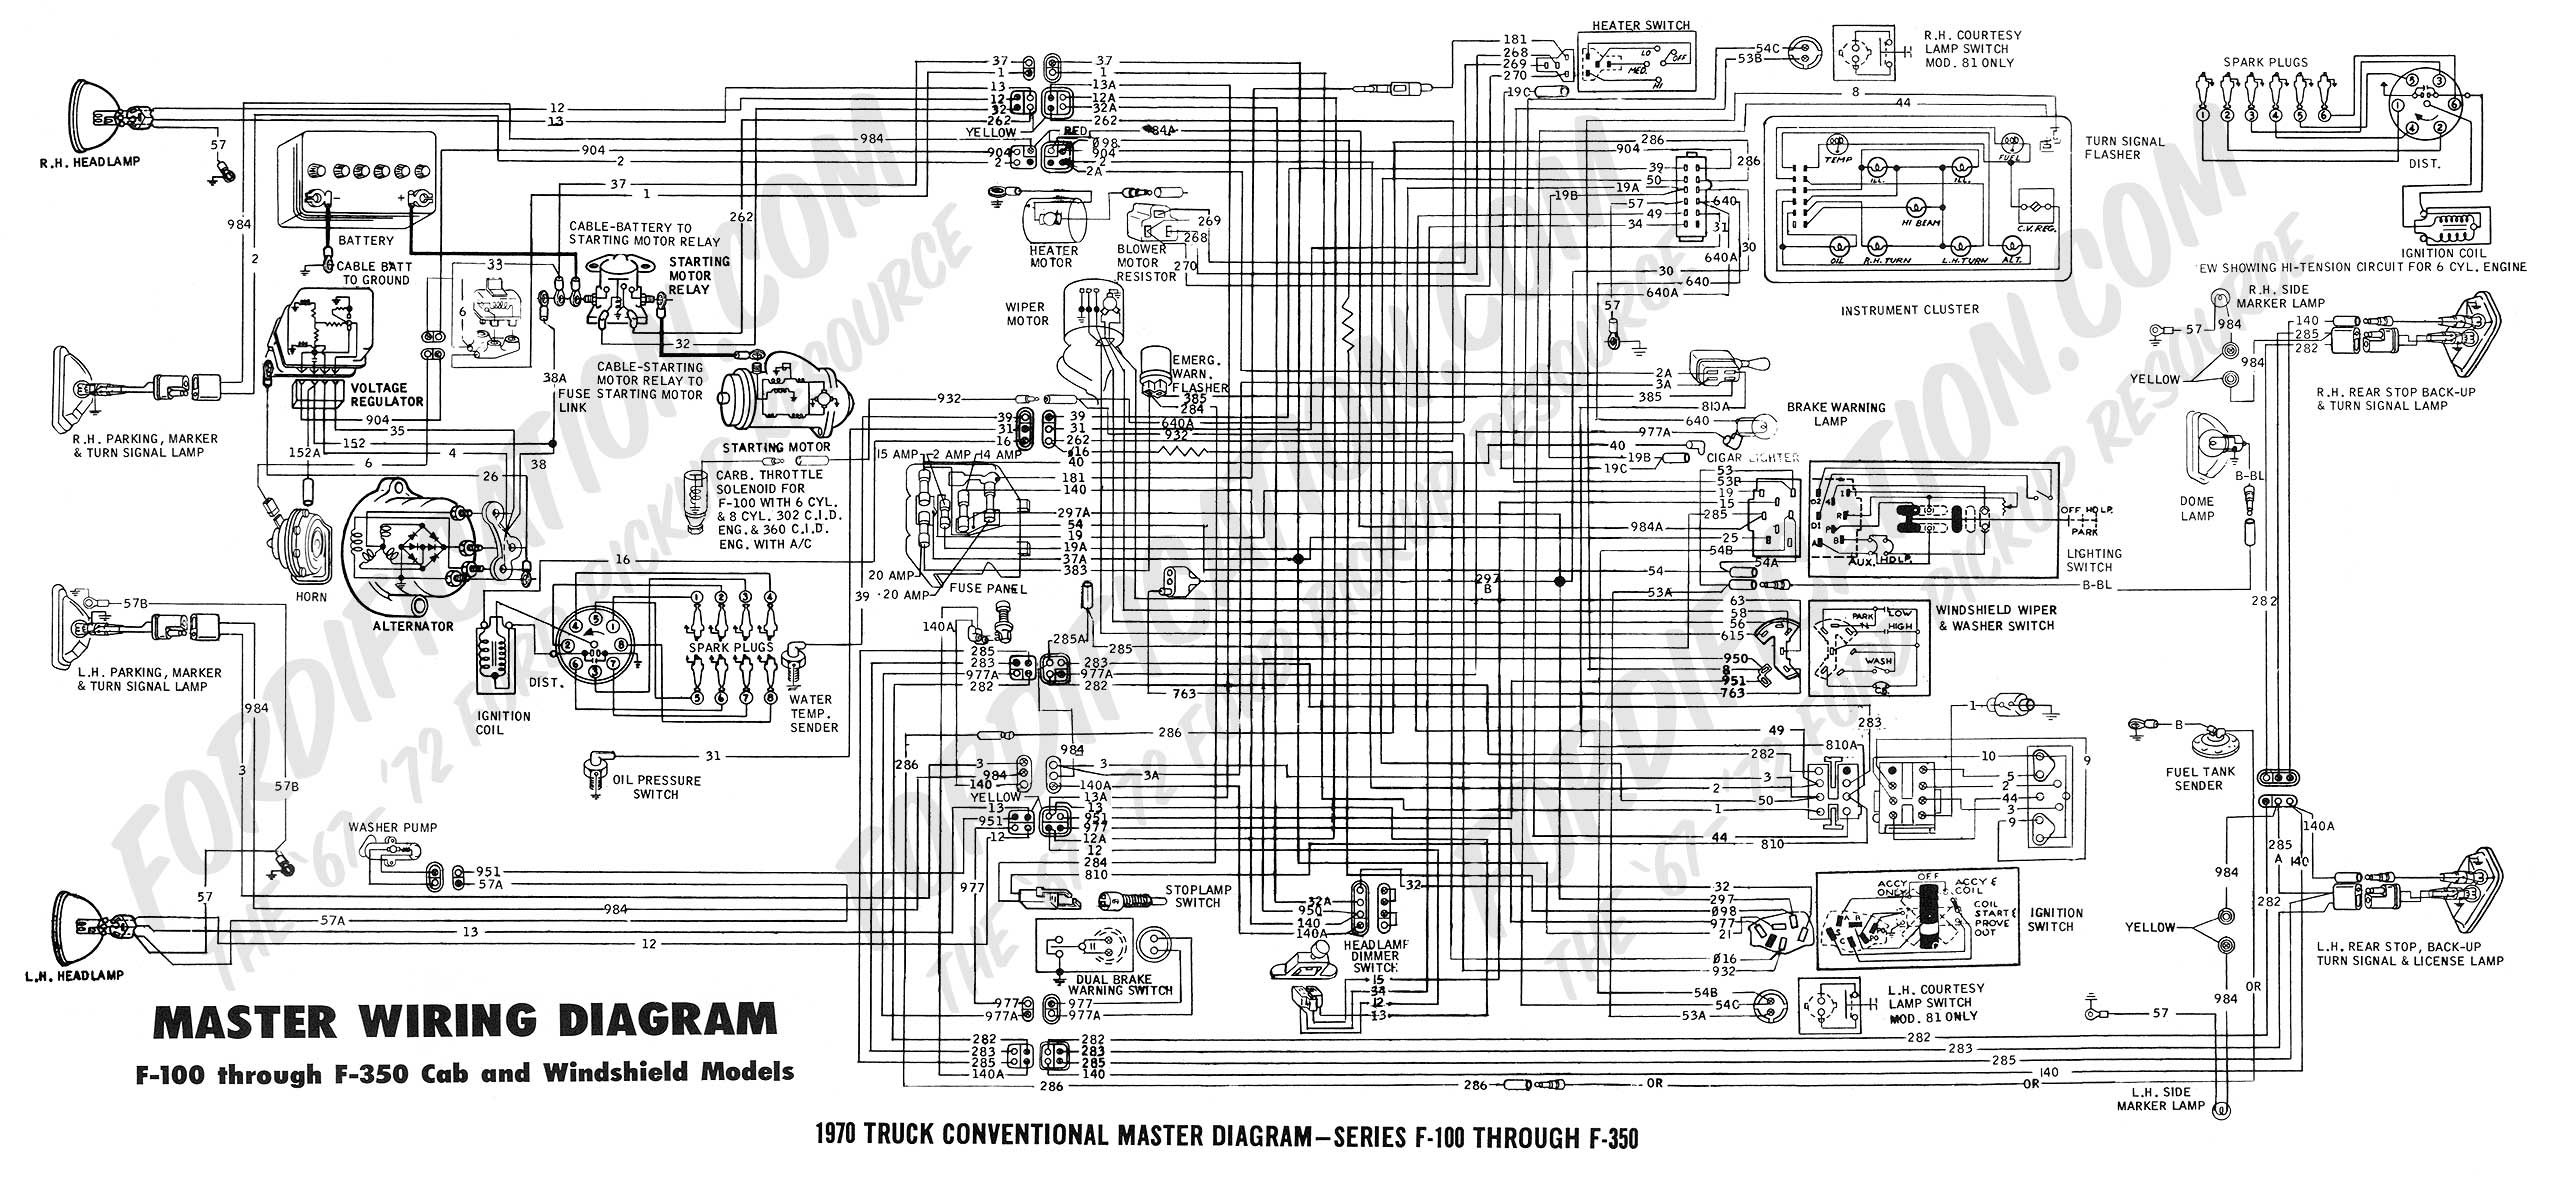 ford truck technical drawings and schematics section h 1989 ford f-250 wiring diagram factory 2006 ford f350 wiring diagrams #10